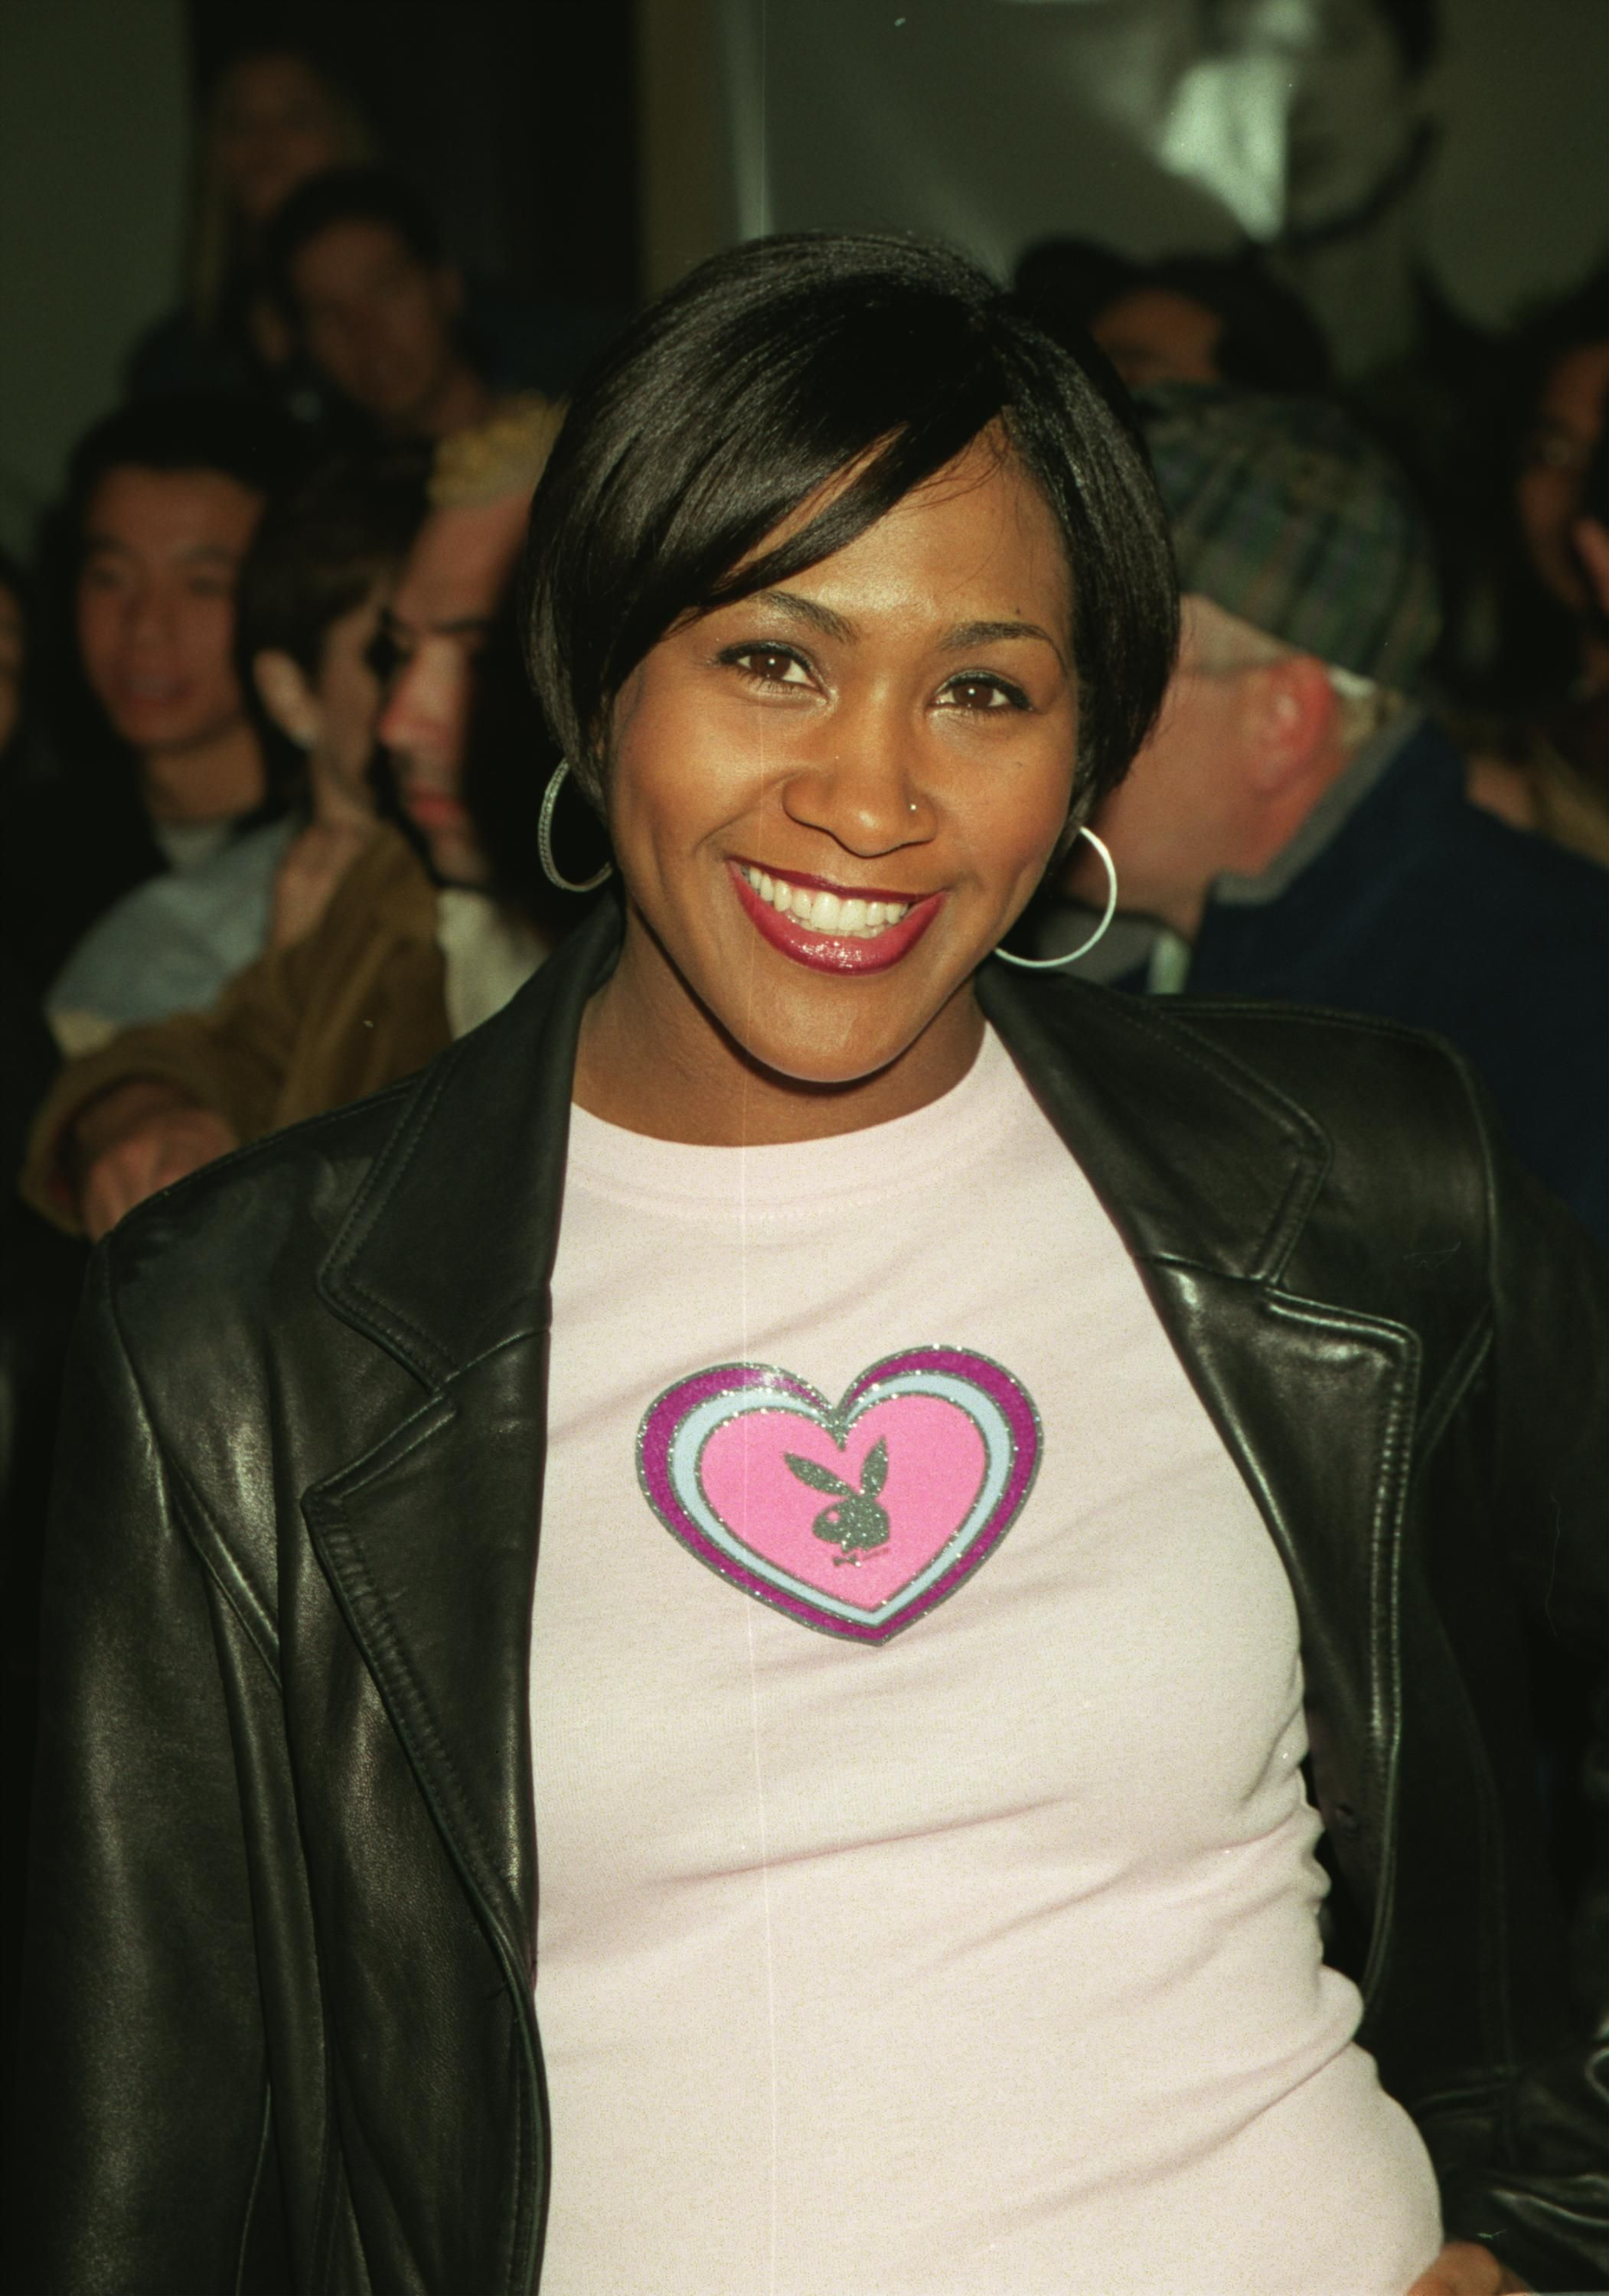 Terri J. Vaughn at the WB Network's 2001 All-Star Party on January 6, 2001 in Pasadena. | Photo: Getty Images